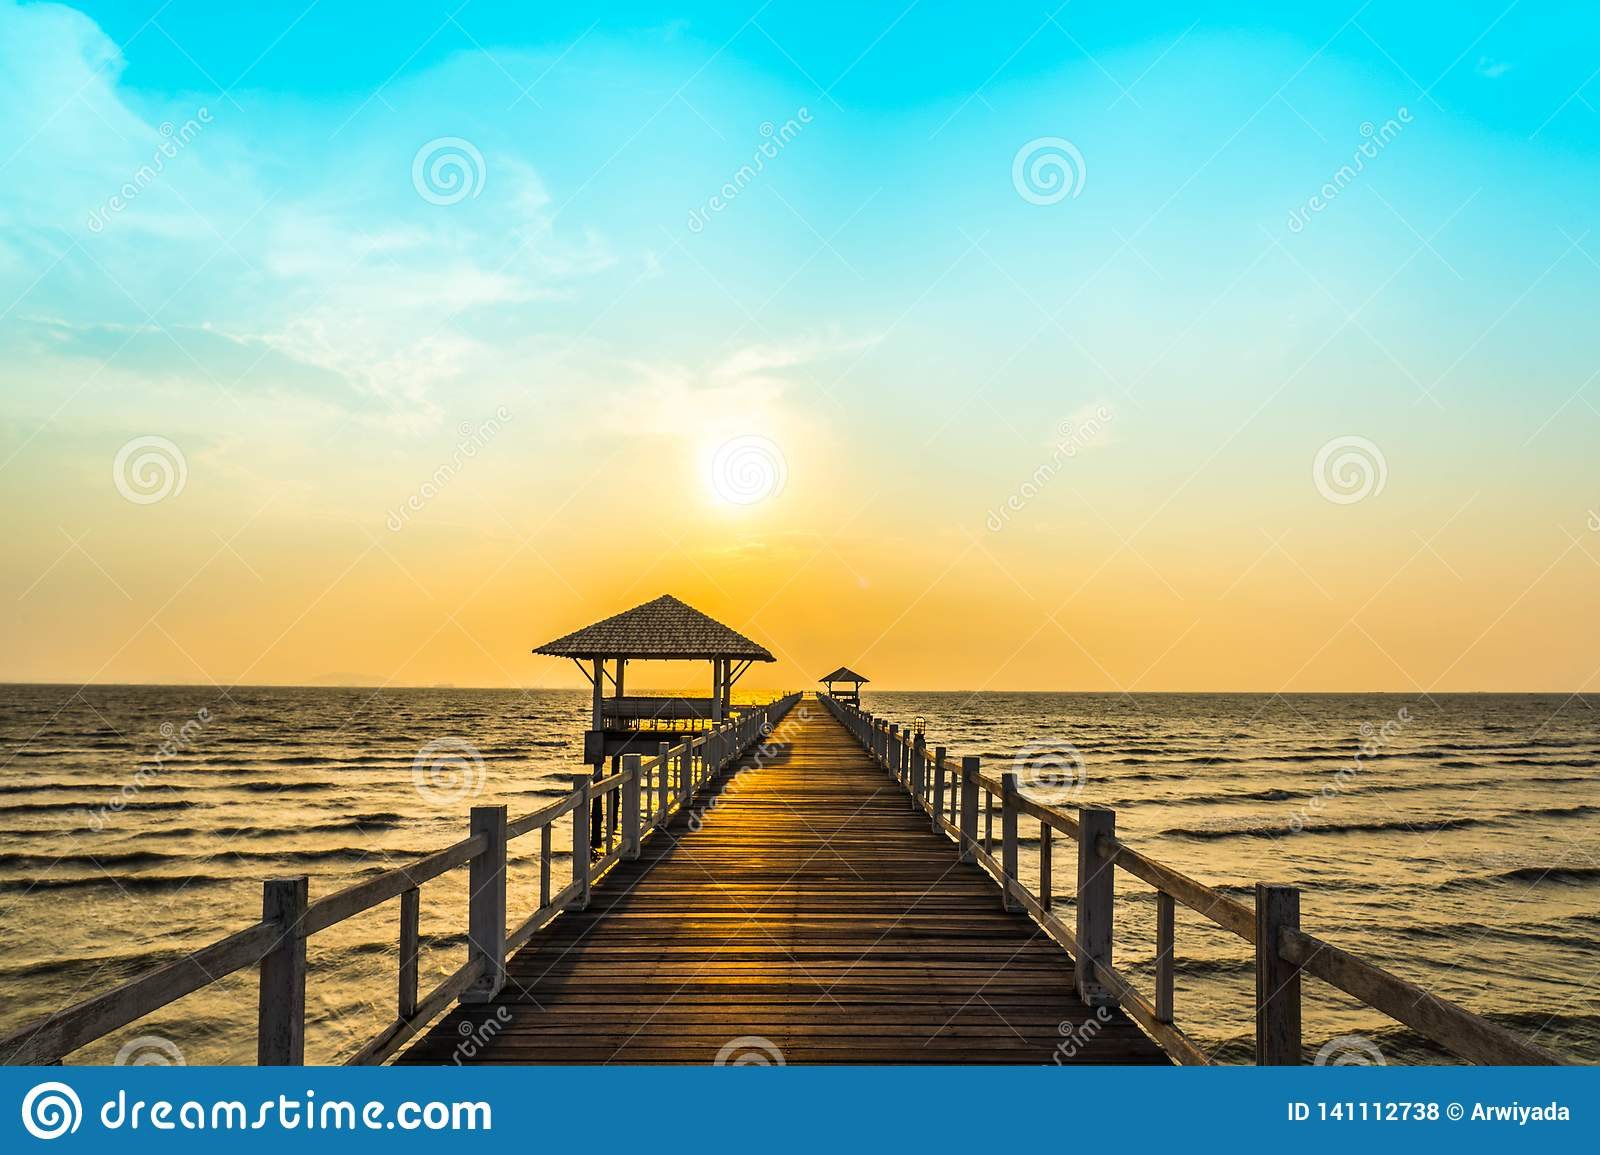 Perspective view of wooden bridge extending into the sea